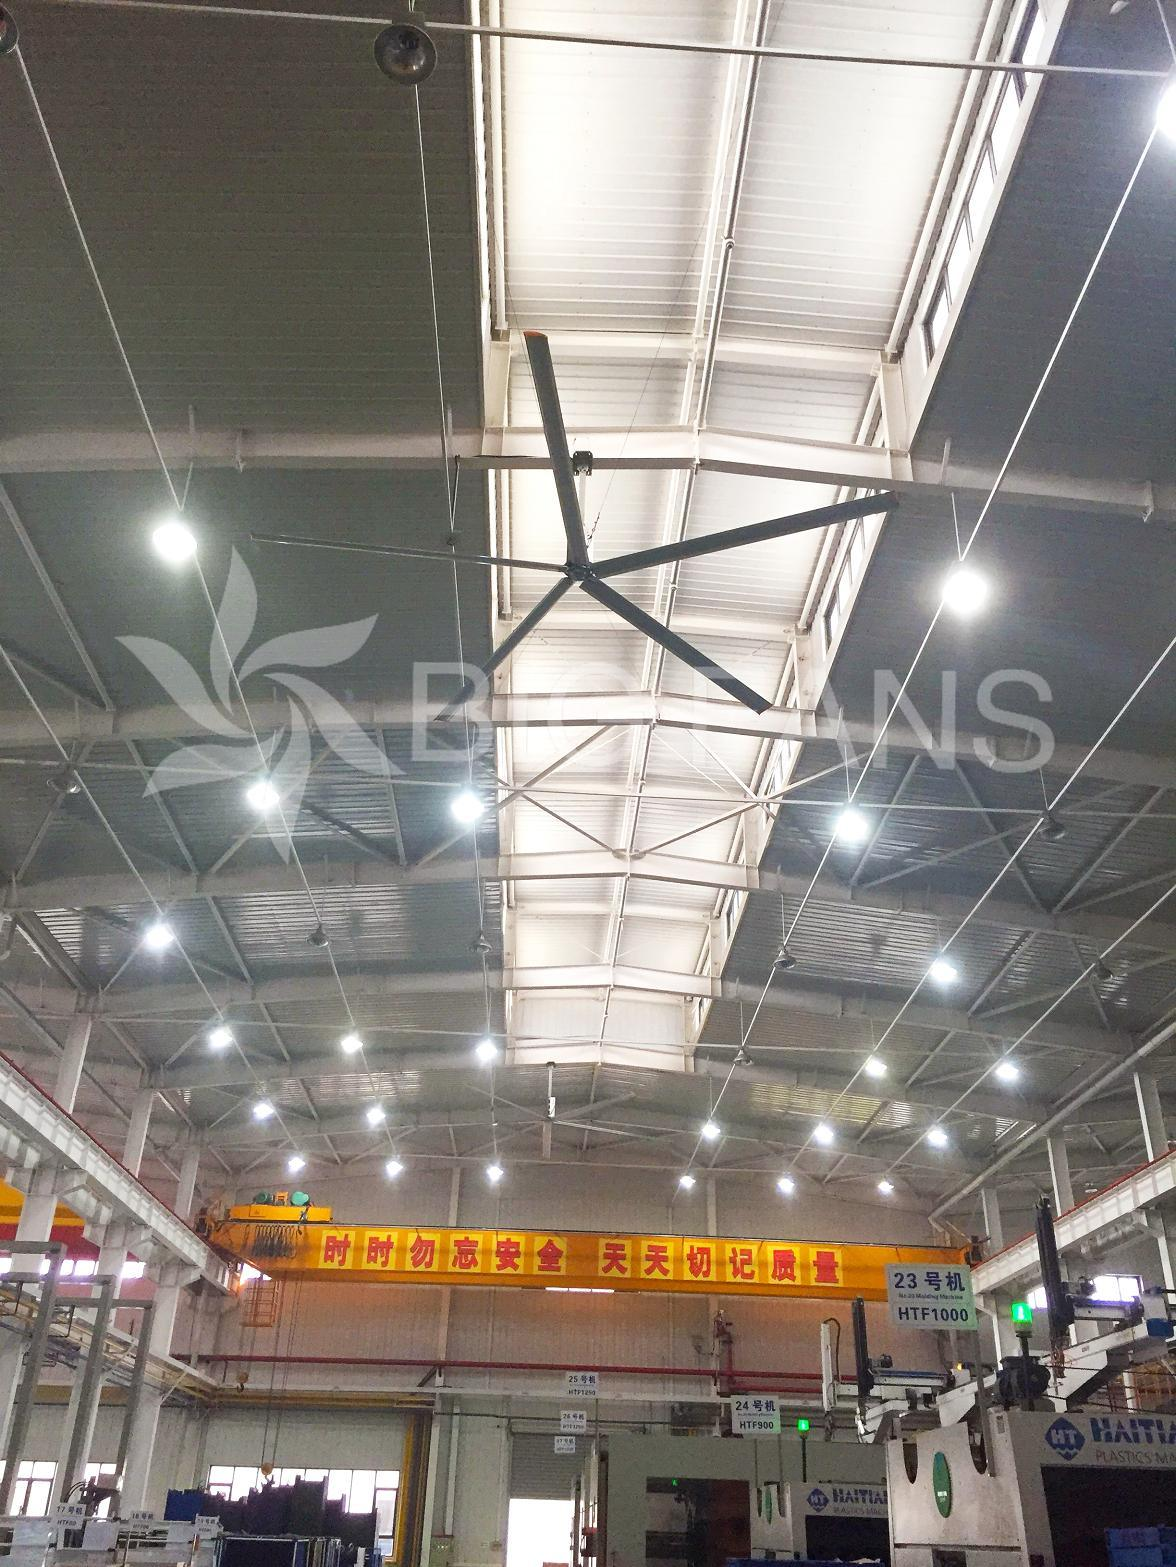 Bigfans Big Size High Quality Low Power Industrial Fan6.2m/ (20.4FT)